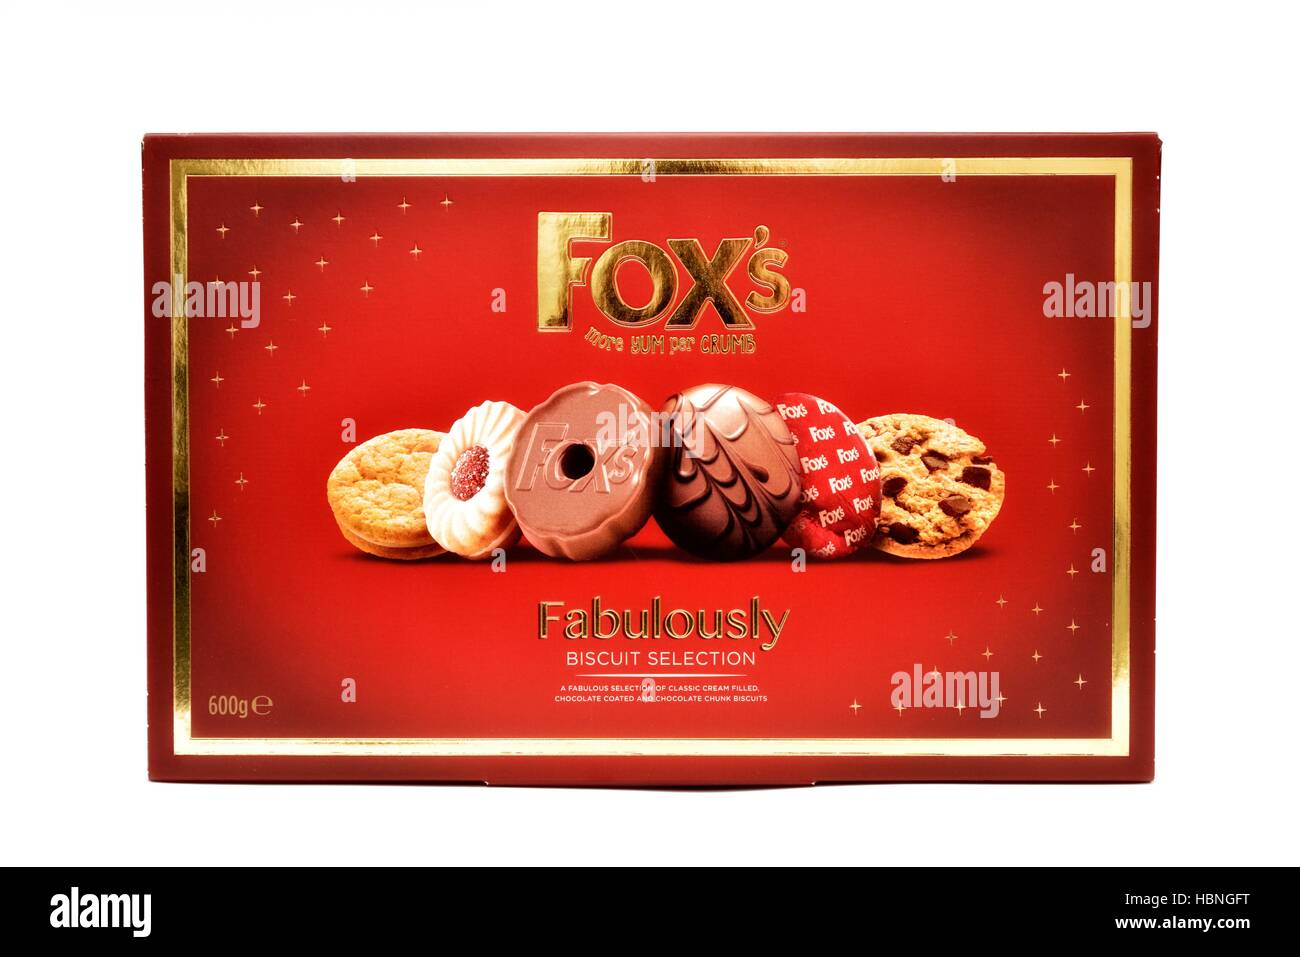 Biscuit Selection Stock Photos Biscuit Selection Stock Images Alamy